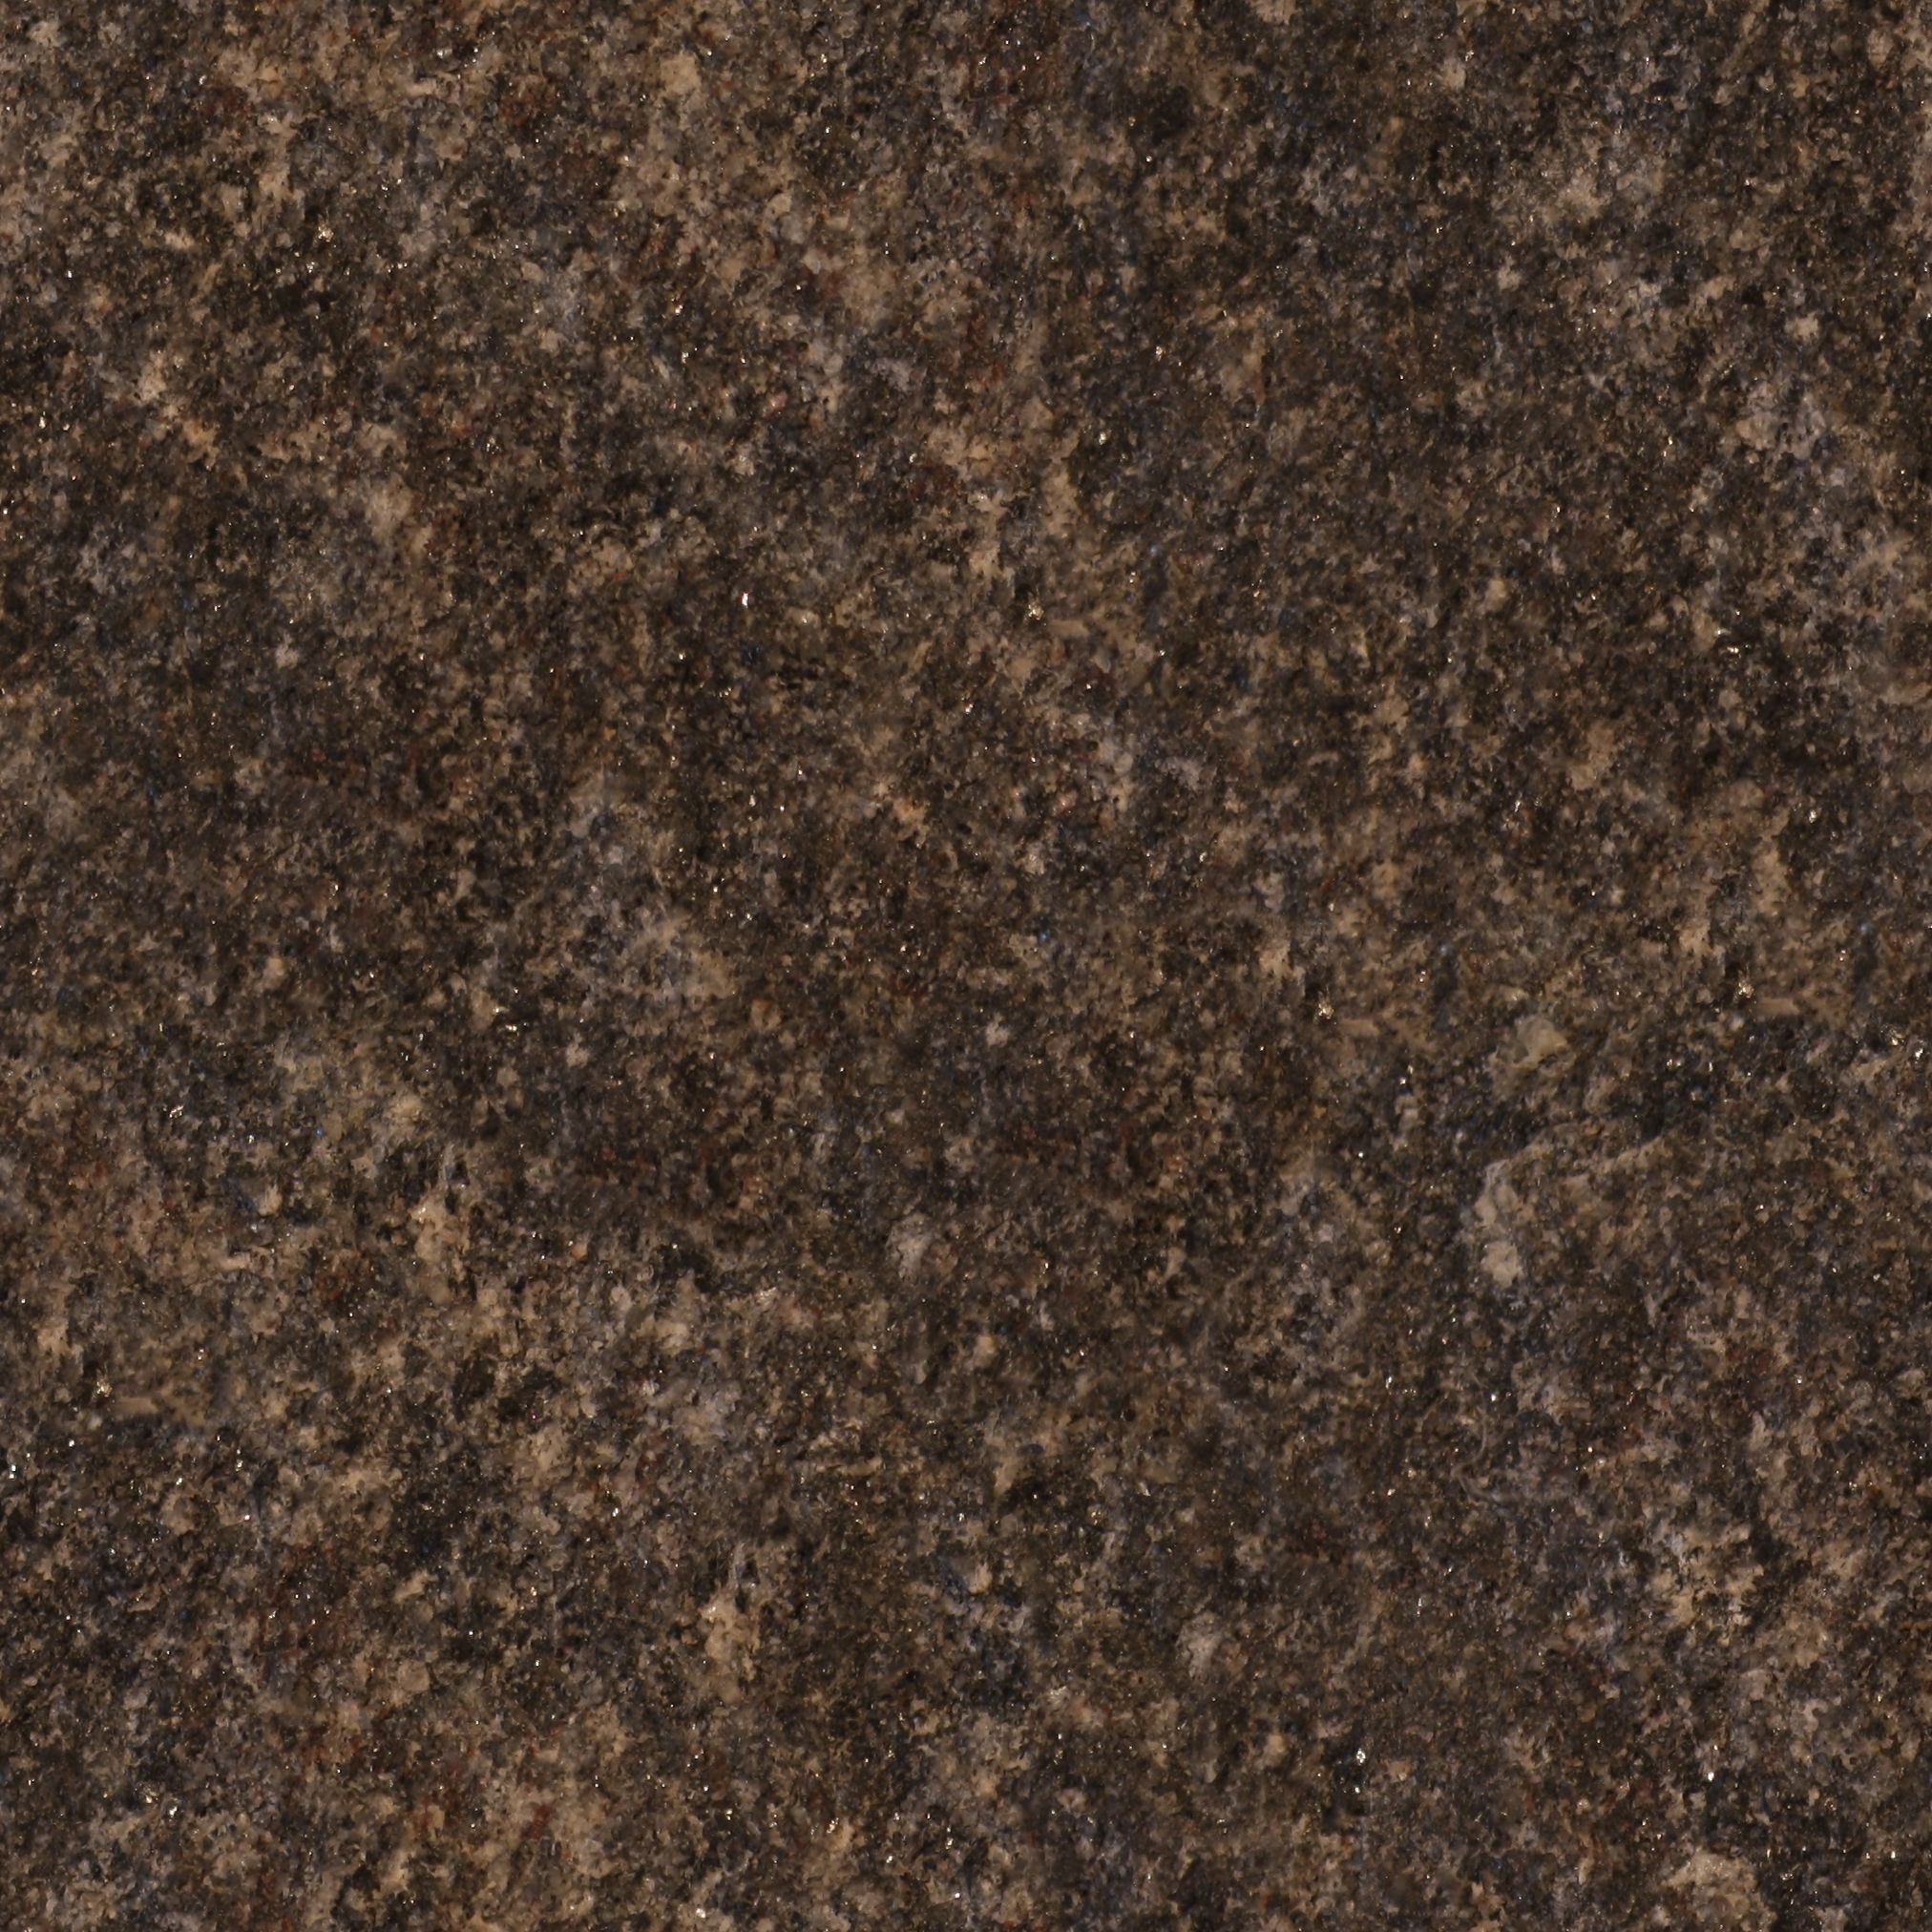 Zero CC tileable Brown Granite texture, photographed and ... Polished Granite Texture Seamless